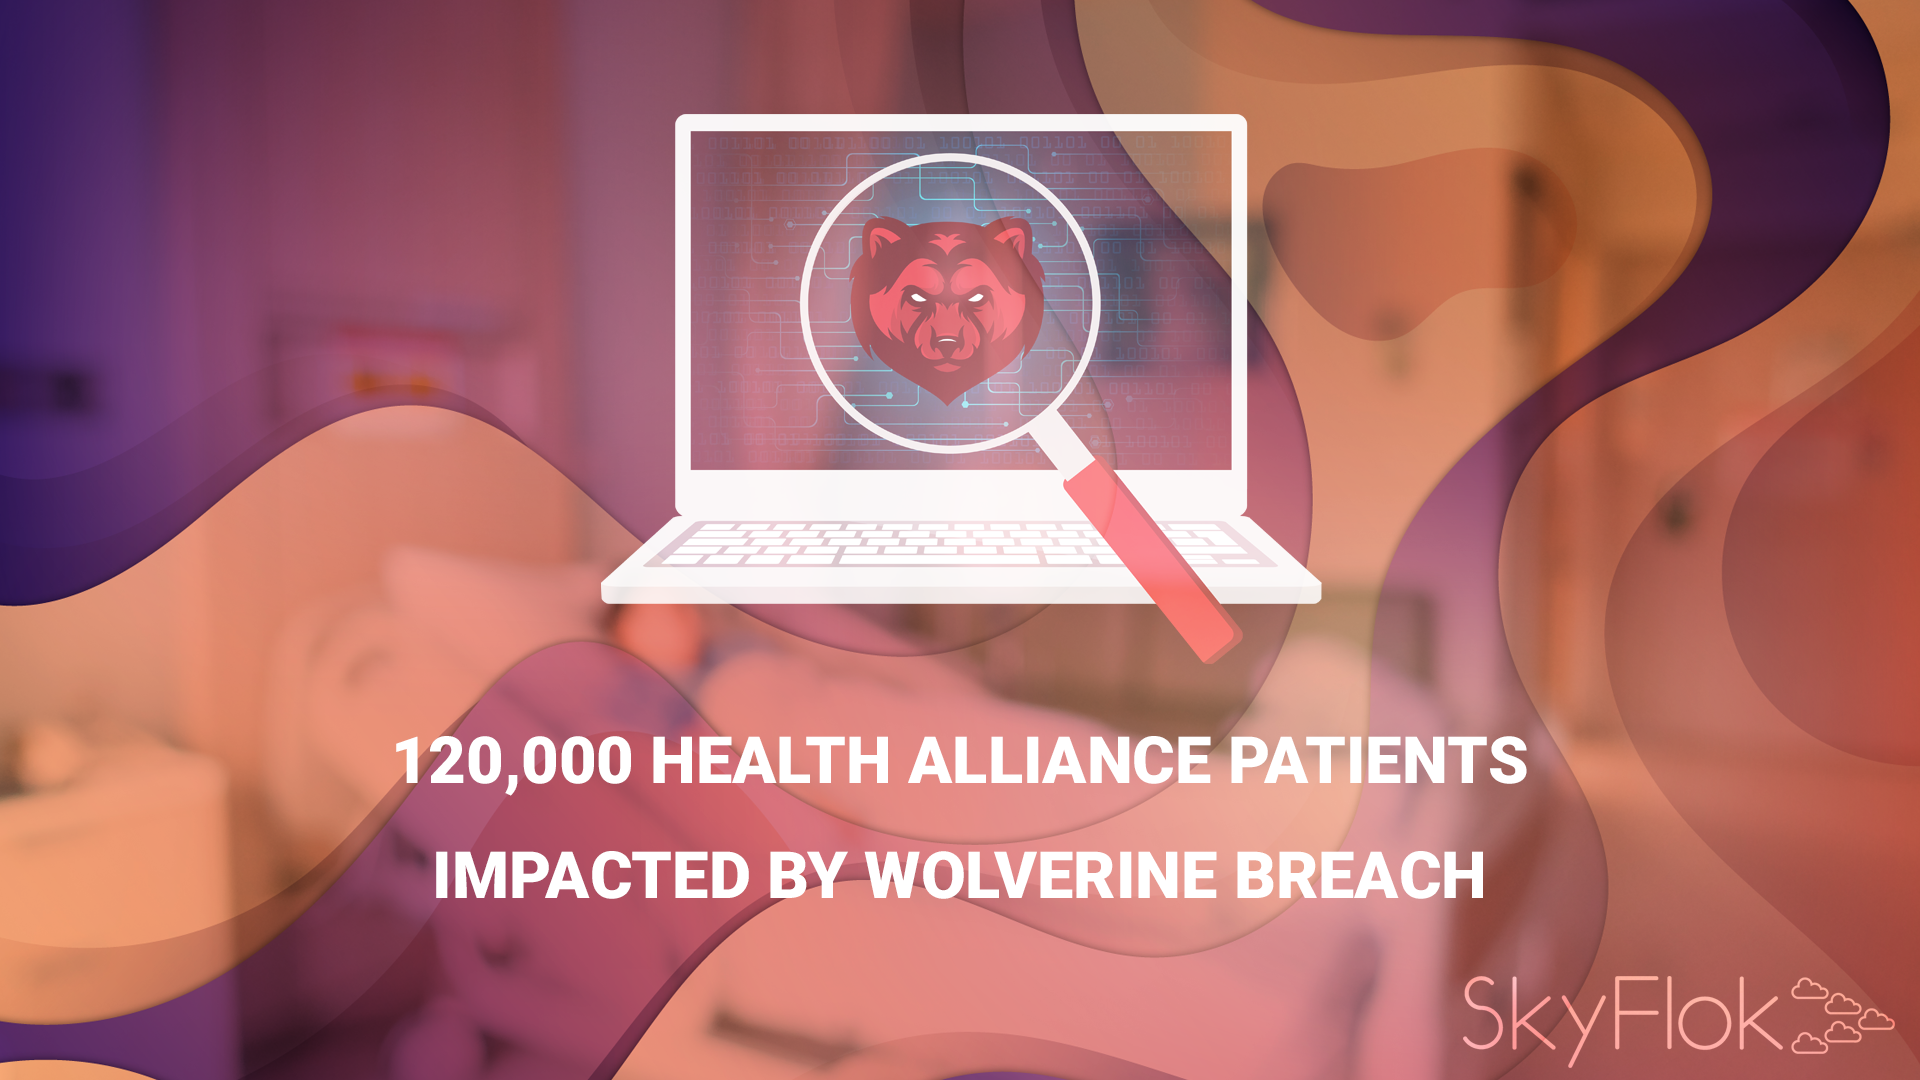 120,000 Health Alliance Patients Impacted by Wolverine Breach